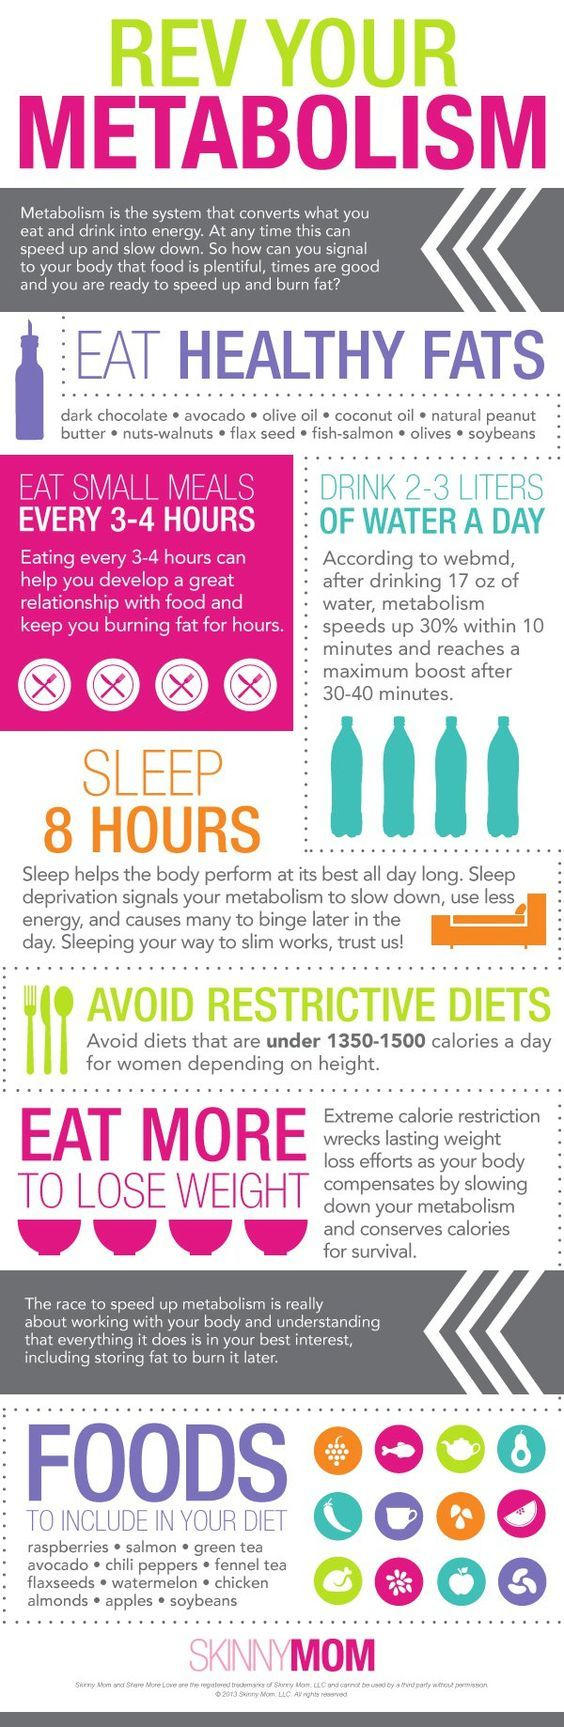 These 10 Graphs to Help You Lose Weight are THE BEST! I already STARTED LOSING WEIGHT as soon as I started following some of them! The results are GREAT! I'm so happy I found this! Definitely pinning for later!